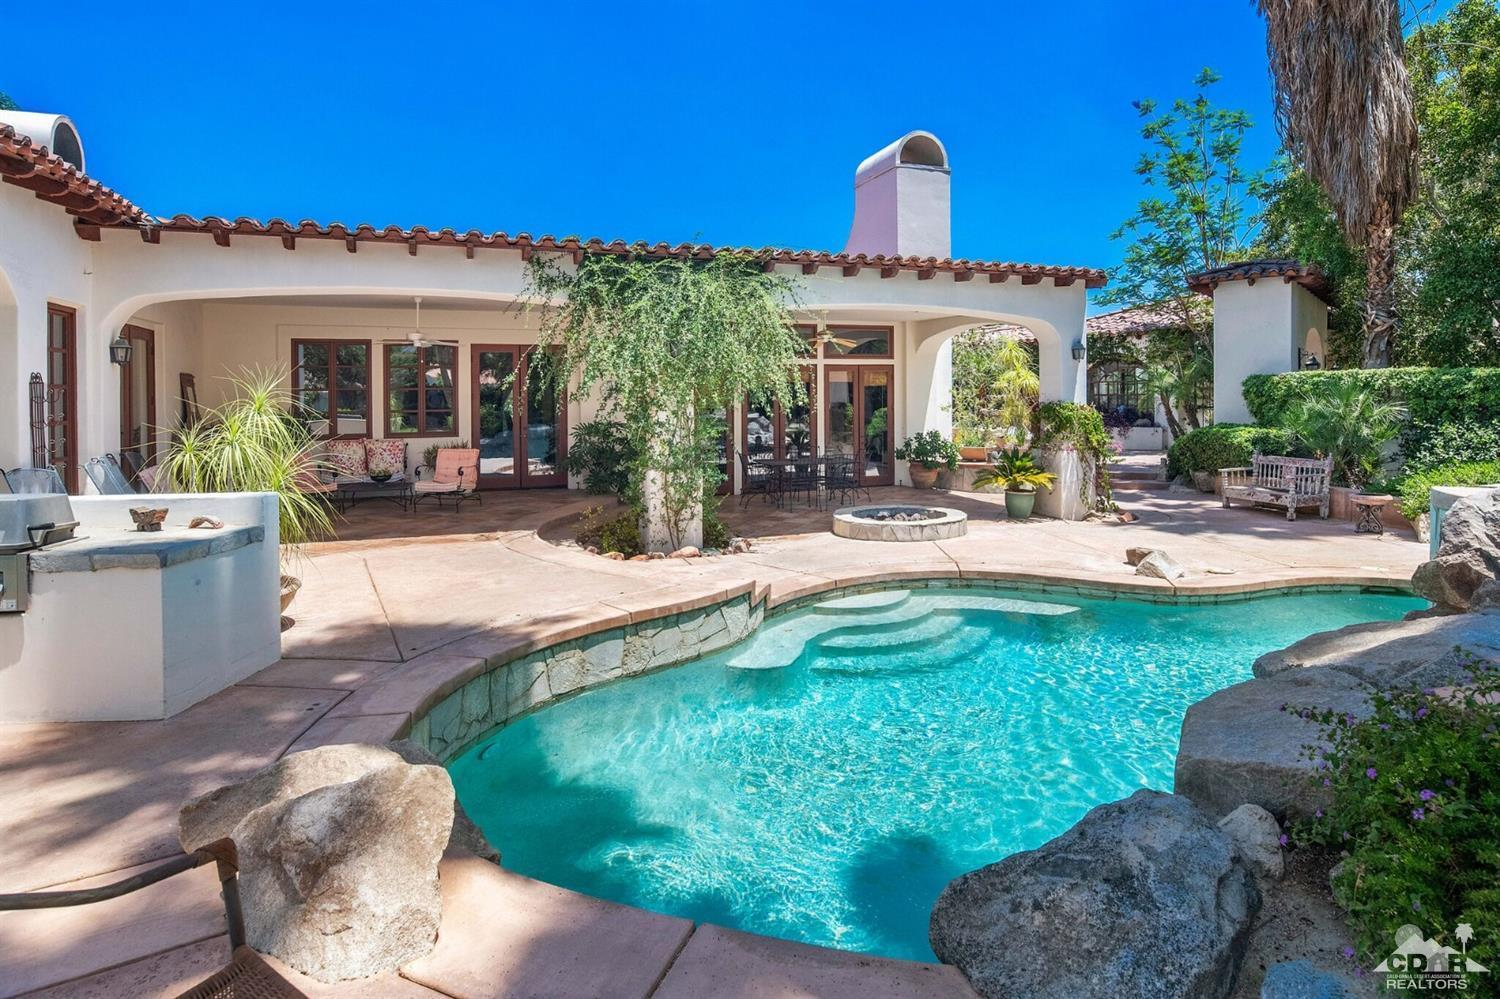 30 Clancy Lane Estates, Rancho Mirage